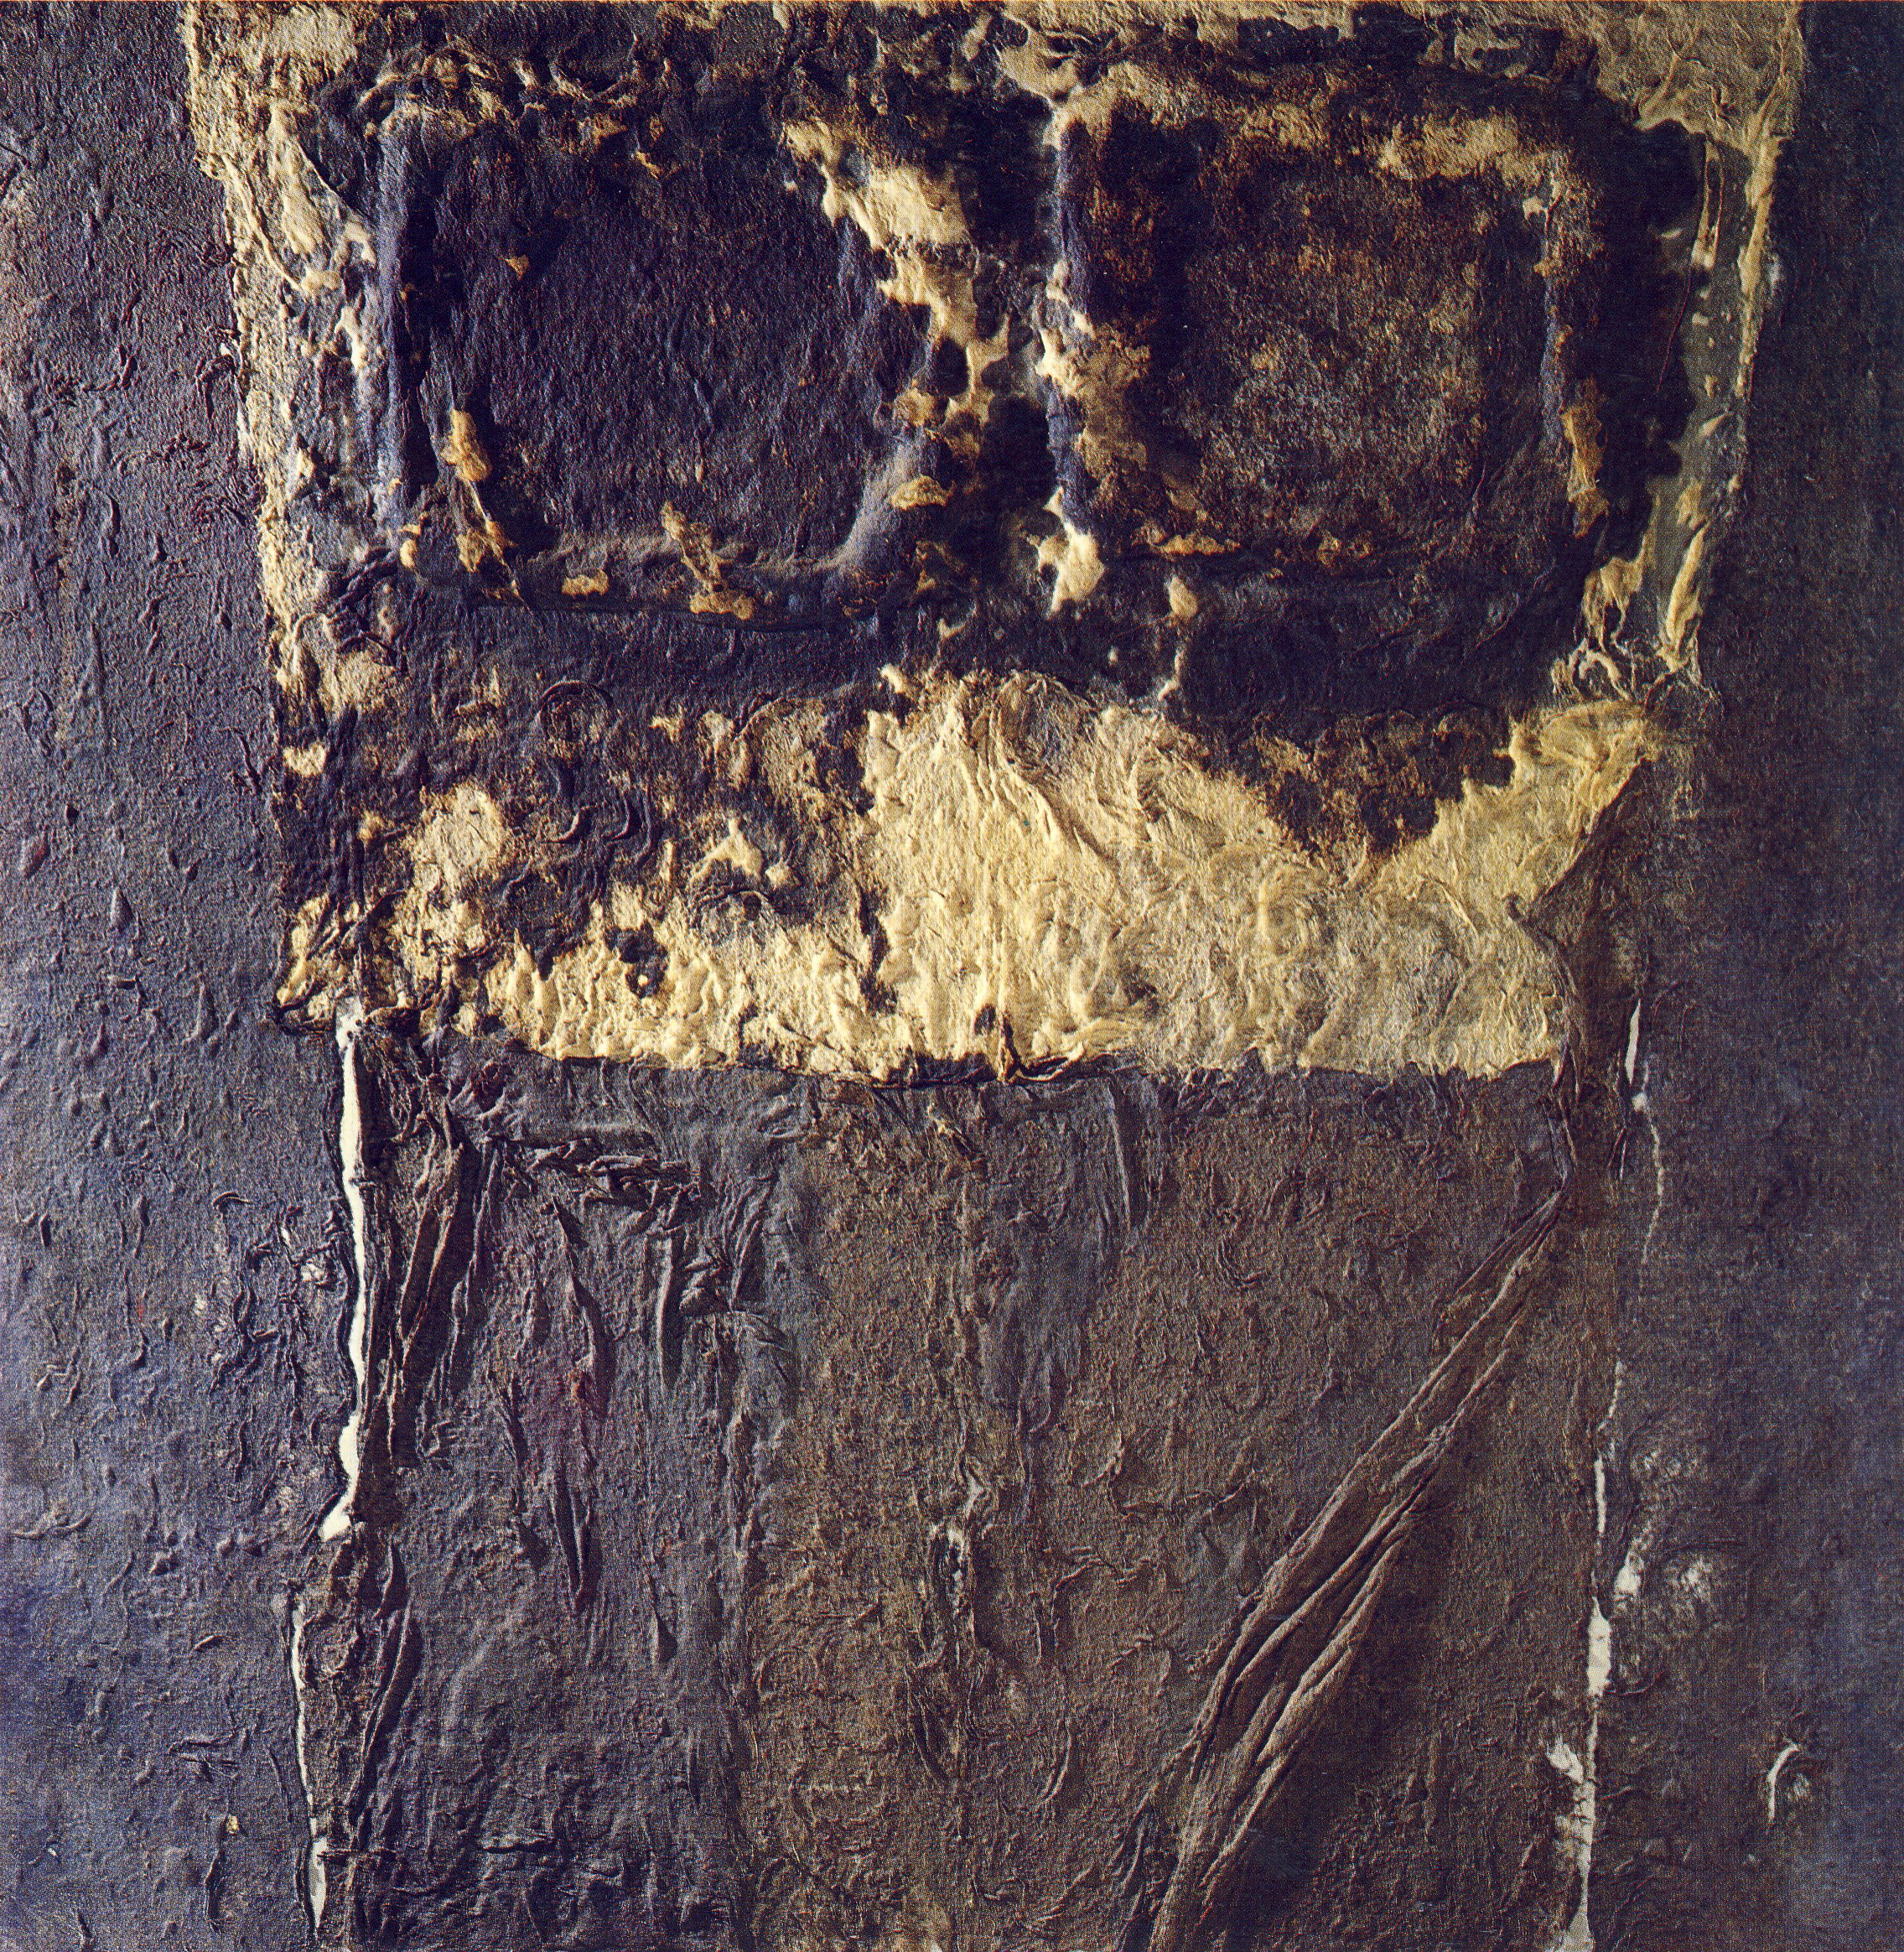 Notte di quiete, 1971, polimaterico su tela, cm 150 x 150   Notte di quiete, 1971, mixed media on canvas, cm 150 x 150